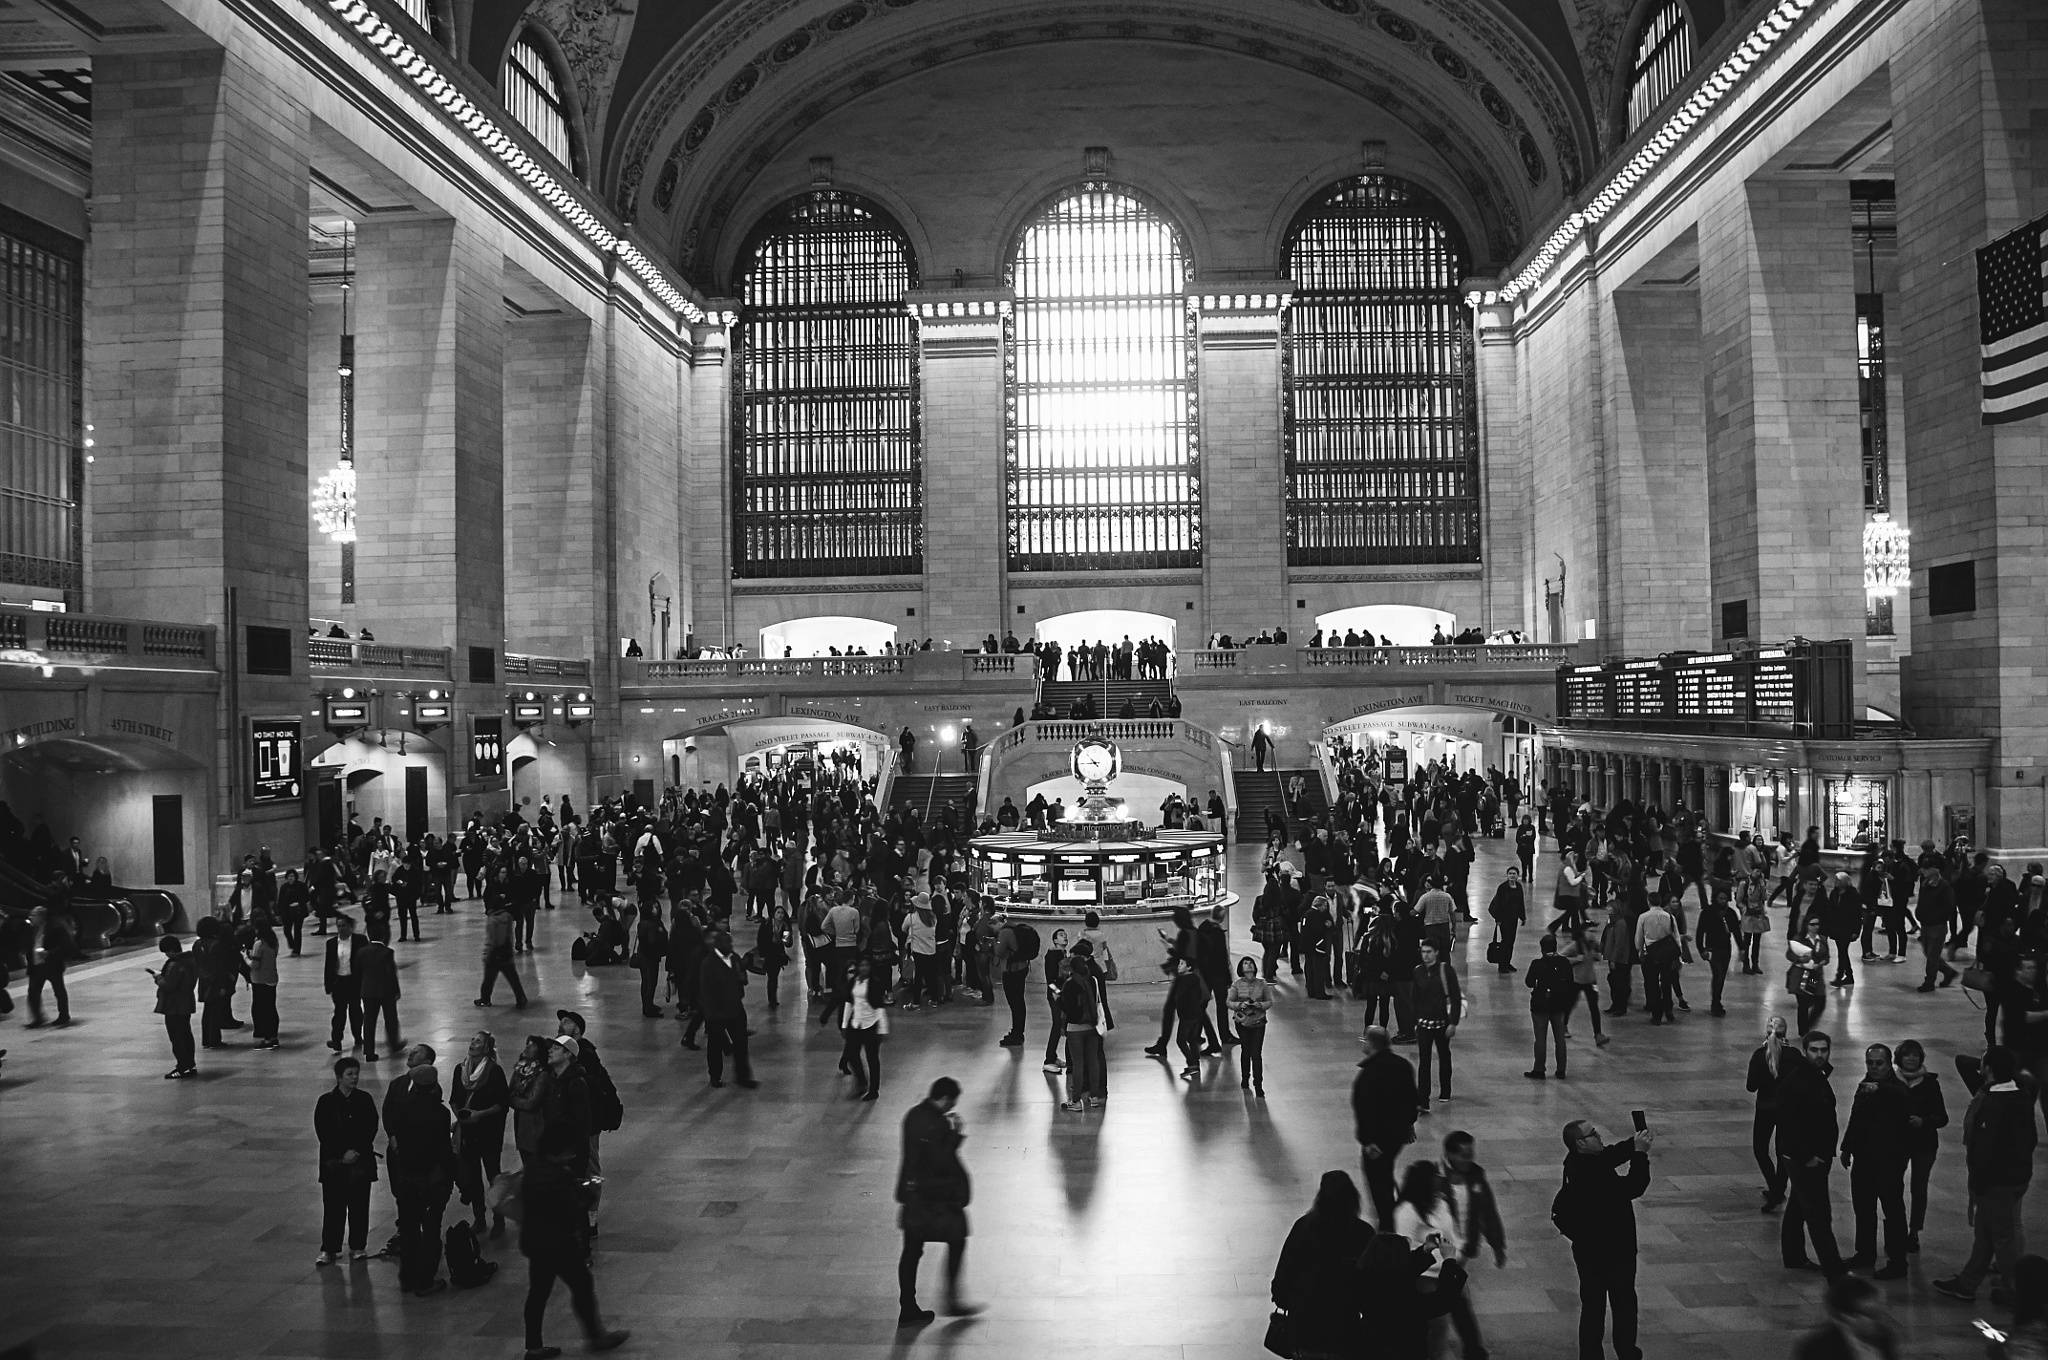 Grand Central Station by Jacqueline Rose